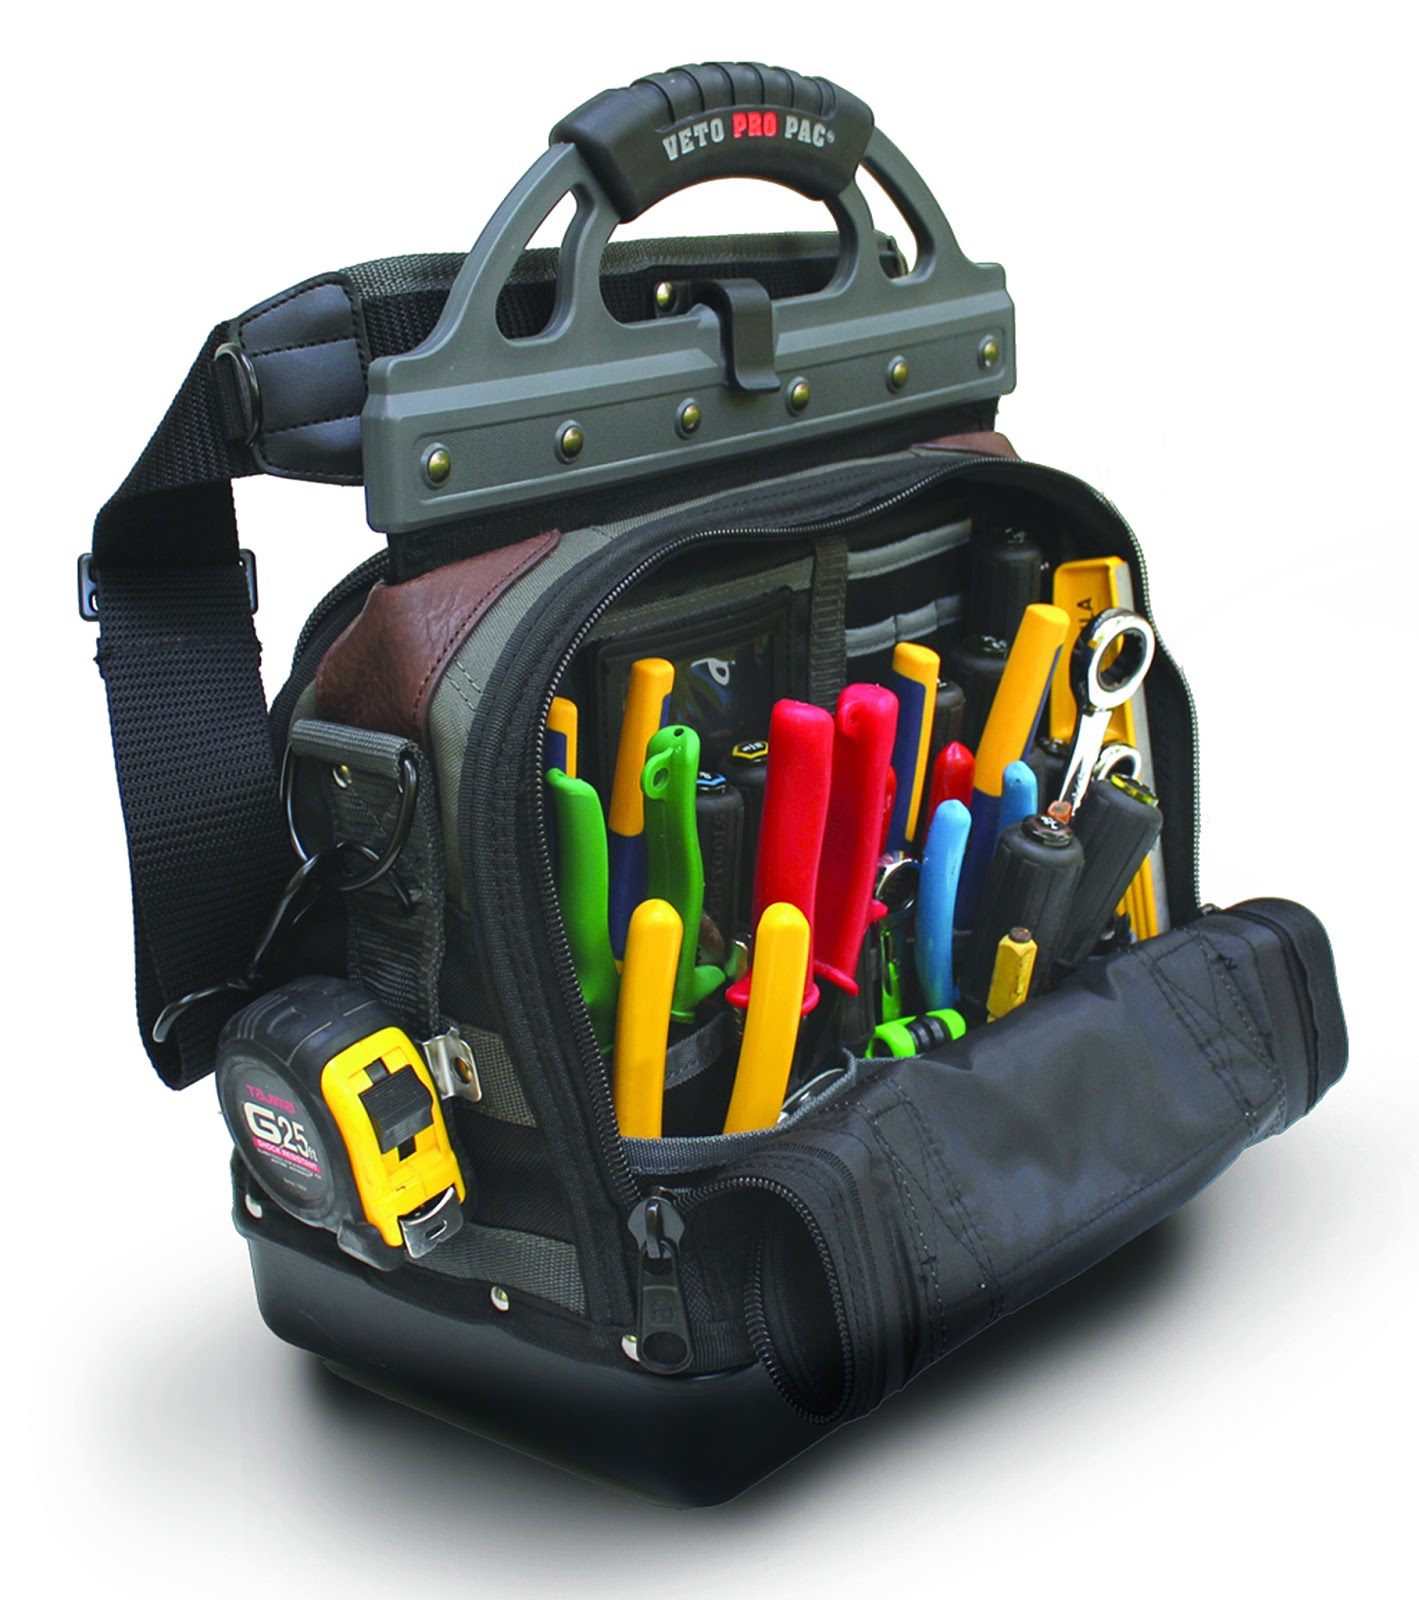 #C6A305 Veto Pro Pac HVAC Tool Bags Veto Pro Pac Tool Bag Blog Best 6793 Tools Needed For Hvac Technician photos with 1419x1600 px on helpvideos.info - Air Conditioners, Air Coolers and more